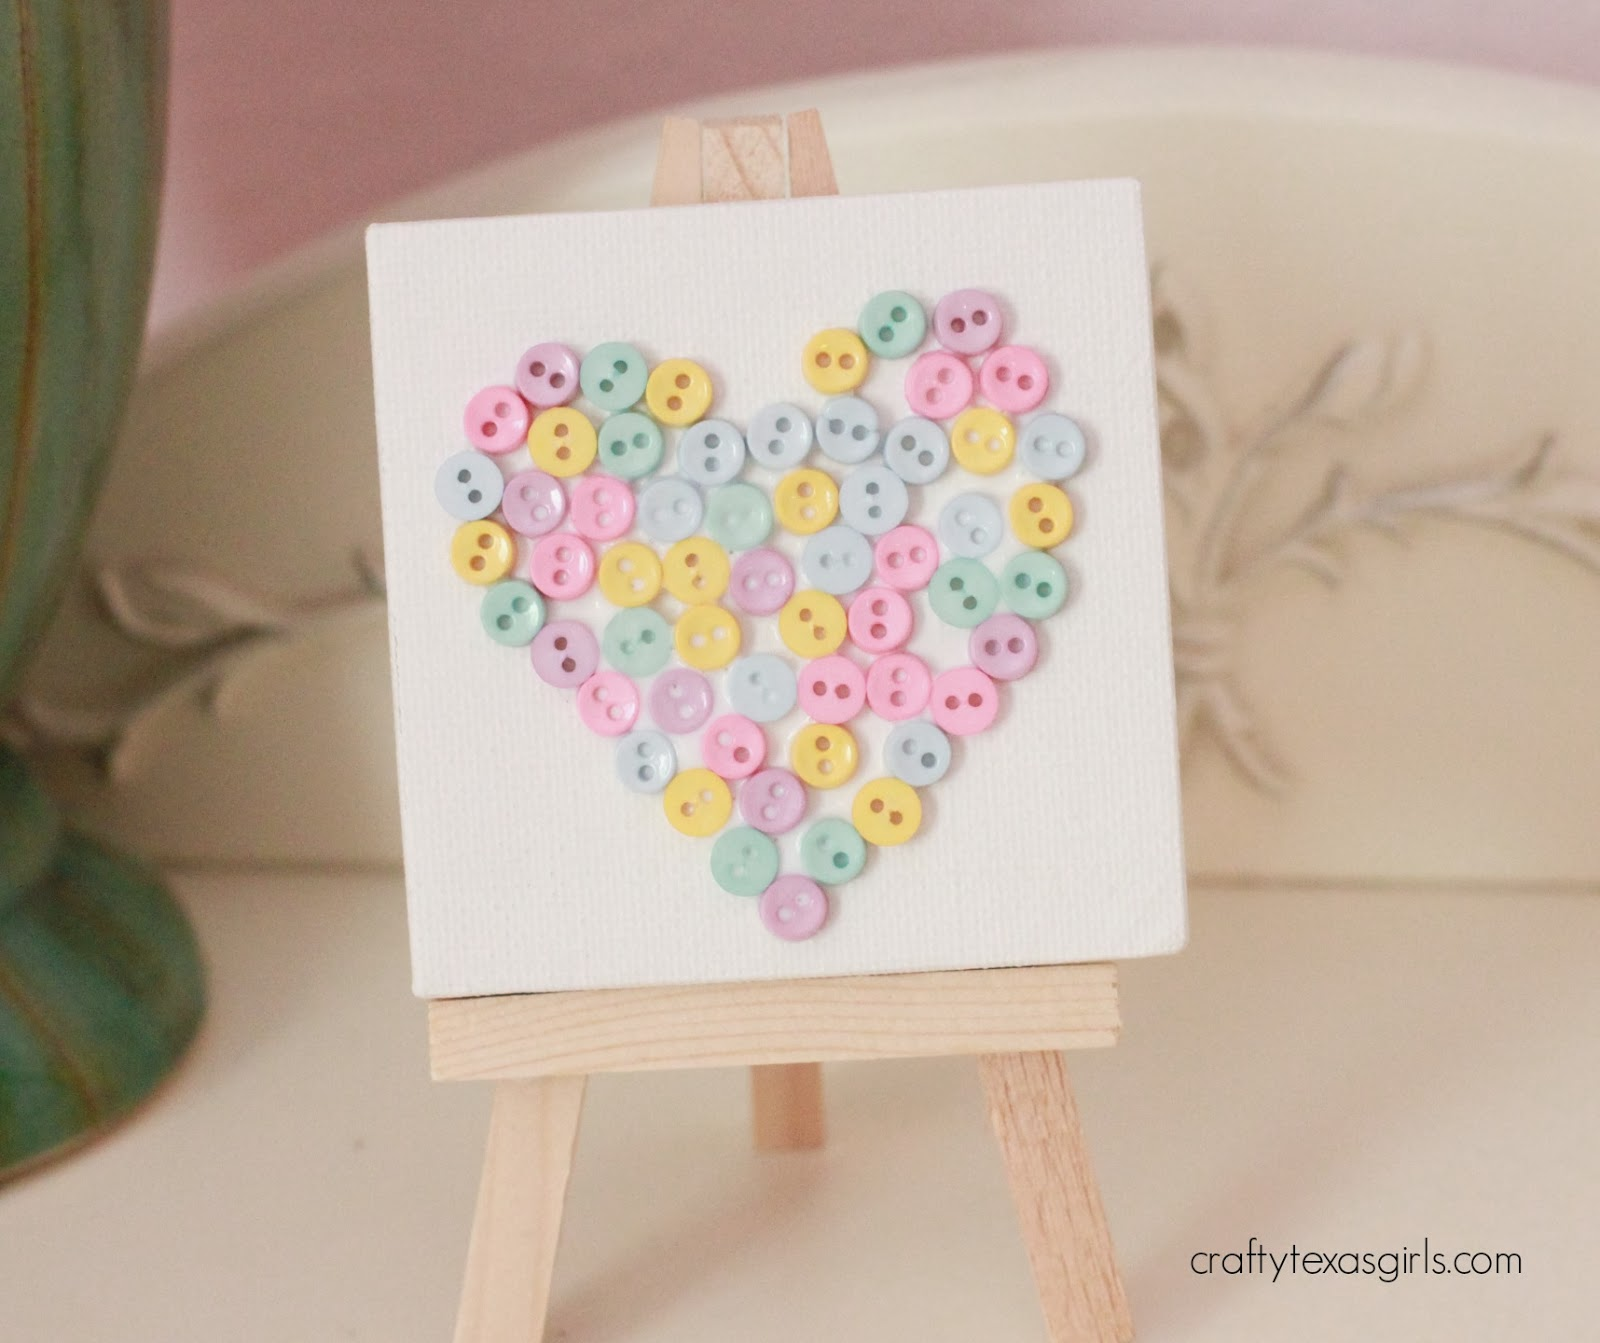 Crafty texas girls button heart a valentine craft for for Button crafts for adults